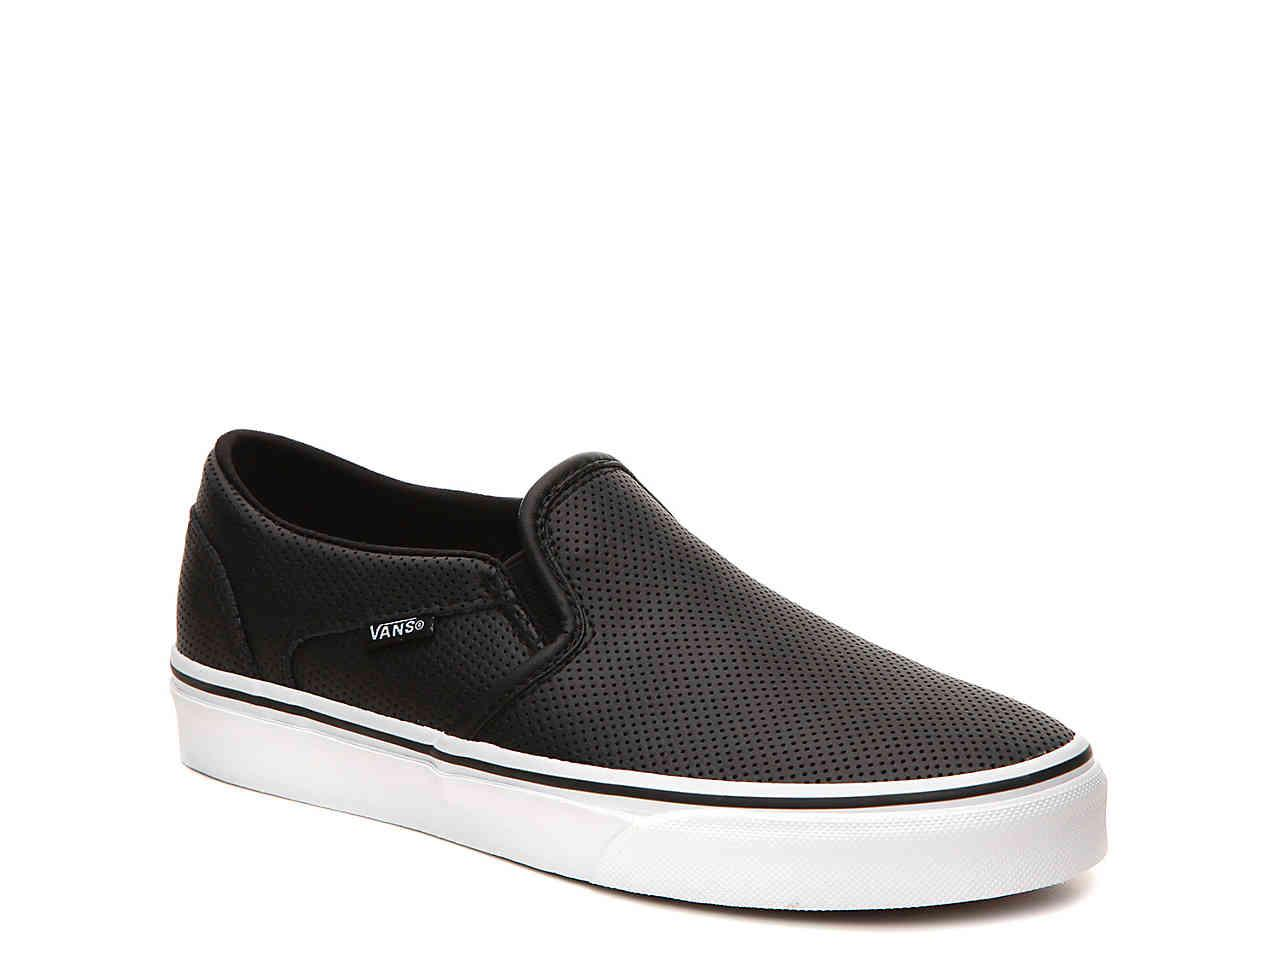 9d40624bcb Lyst - Vans Asher Perforated Slip-on Sneaker in Black